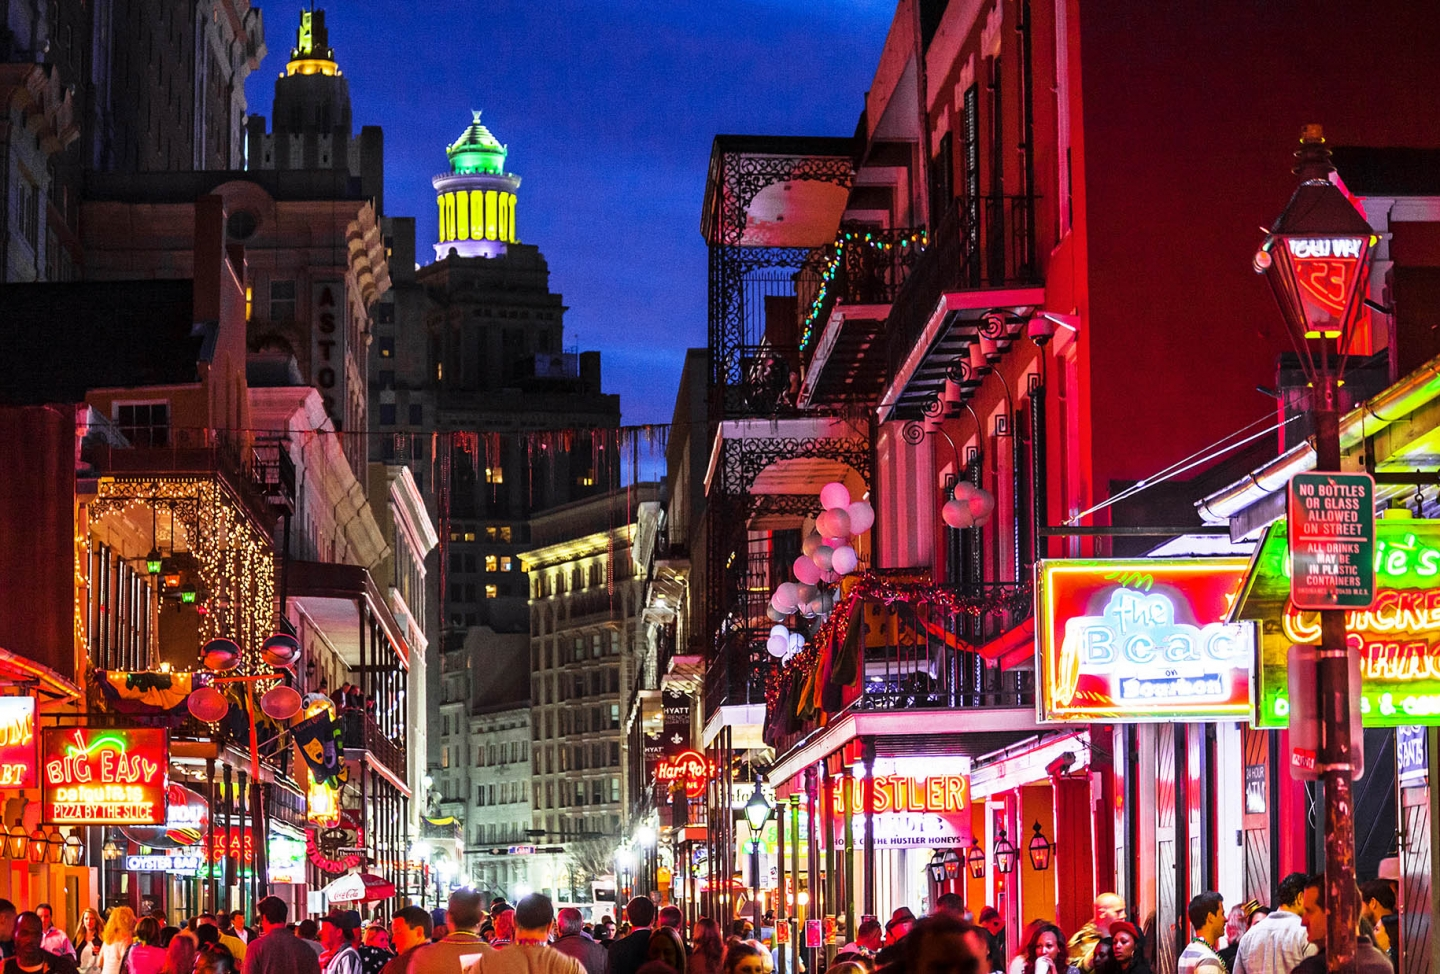 The lights of the French Quarter of New Orleans at night